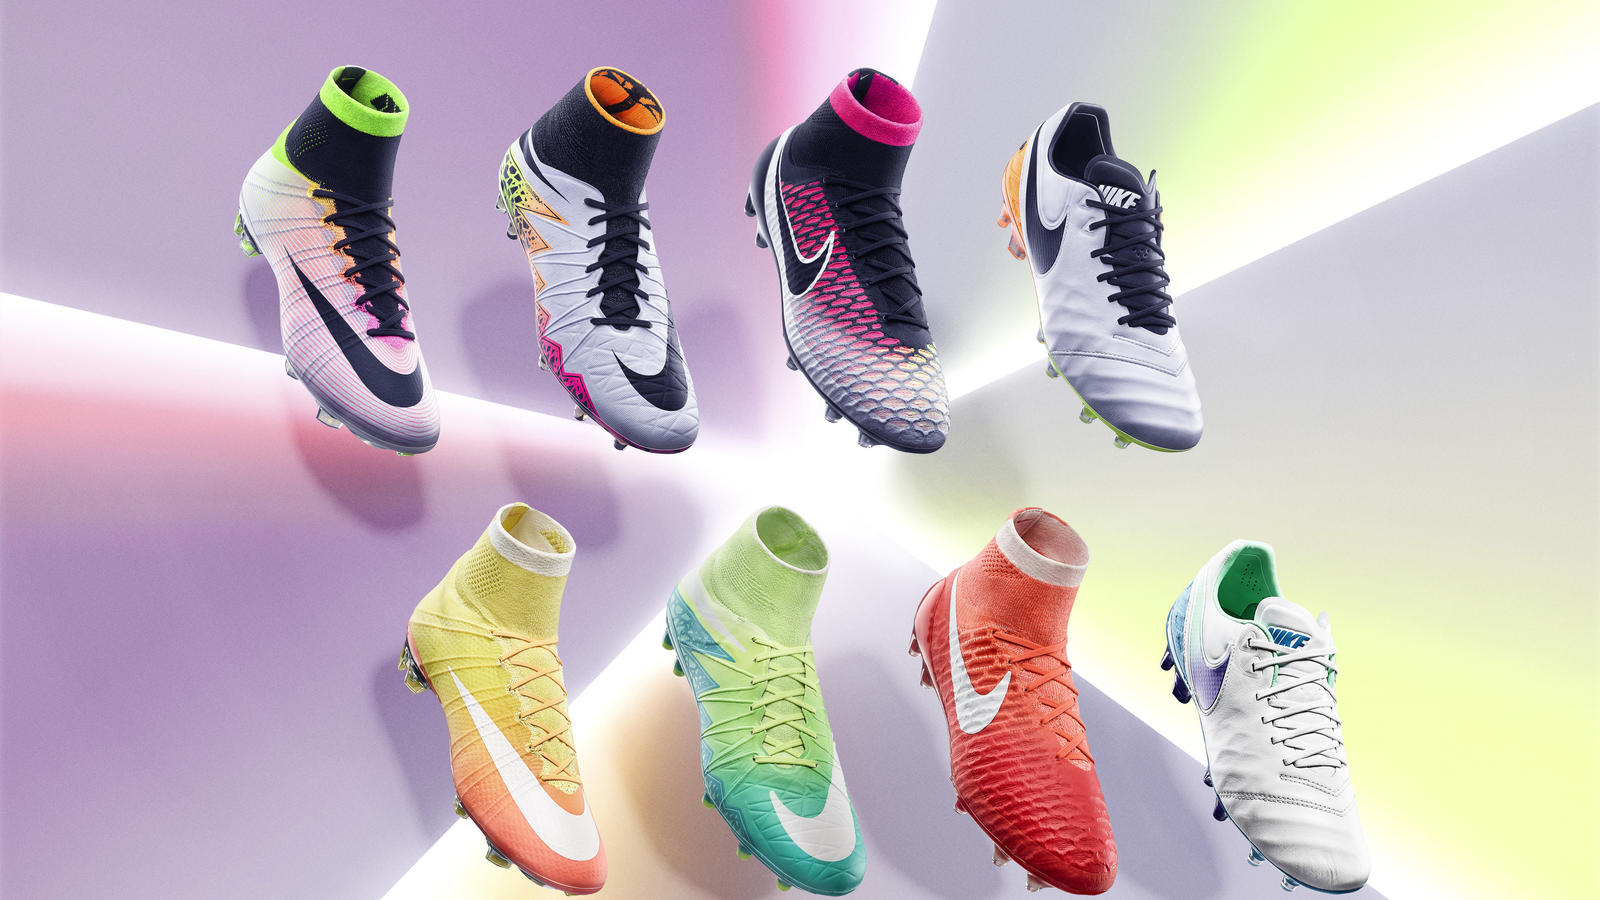 Nike_football_radient_reveal_hero_eight_4k_shadow_hd_1600